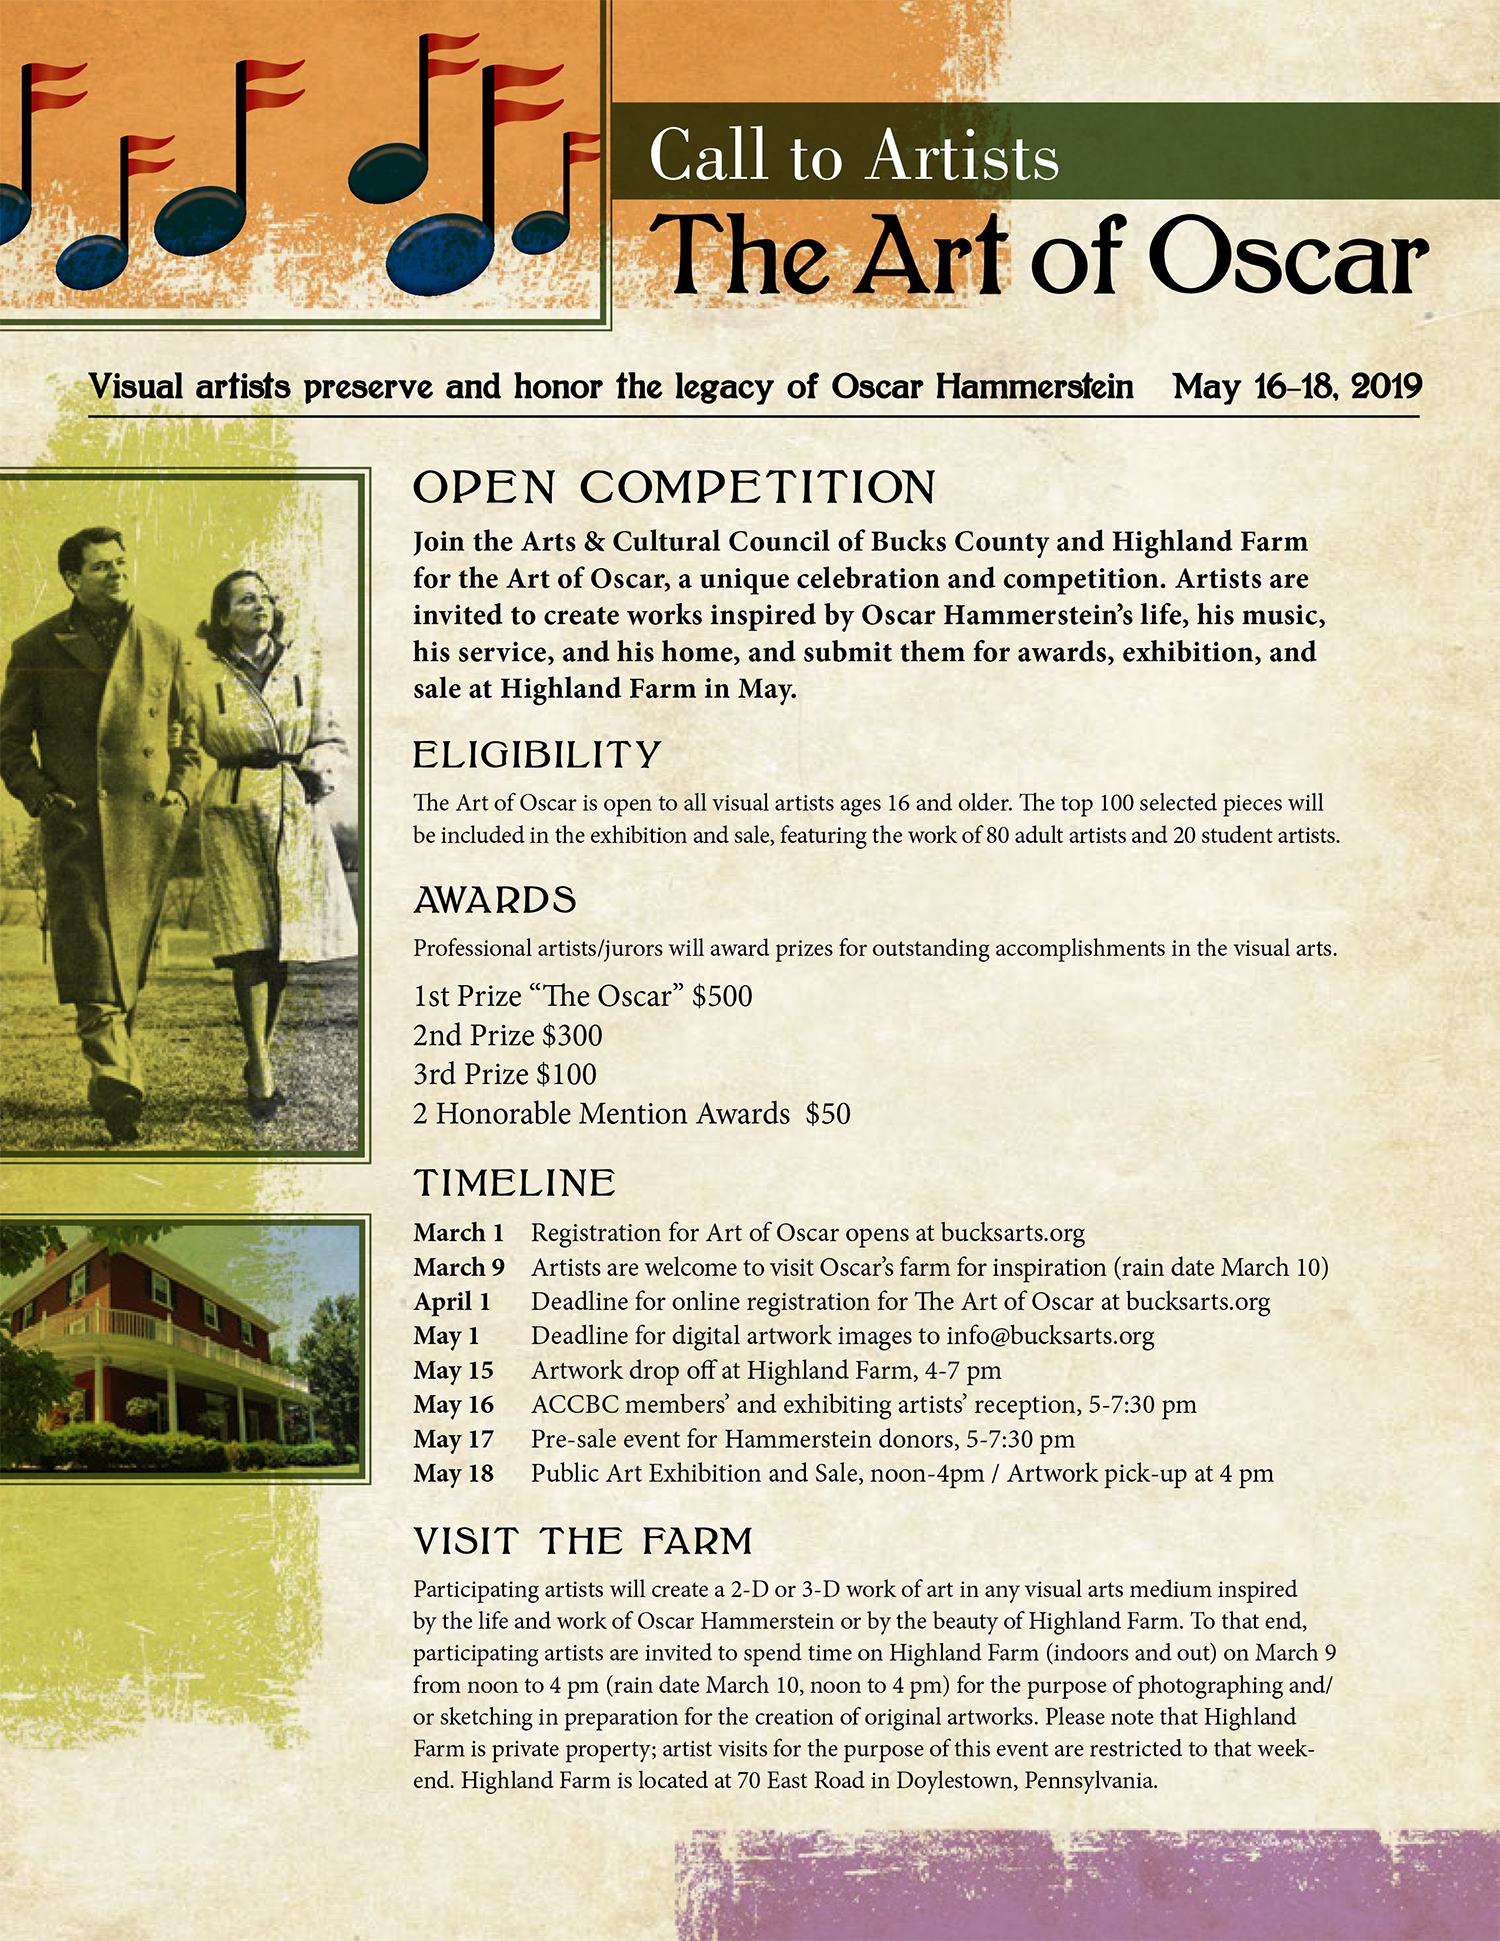 Art of Oscar Flyer-1.jpg